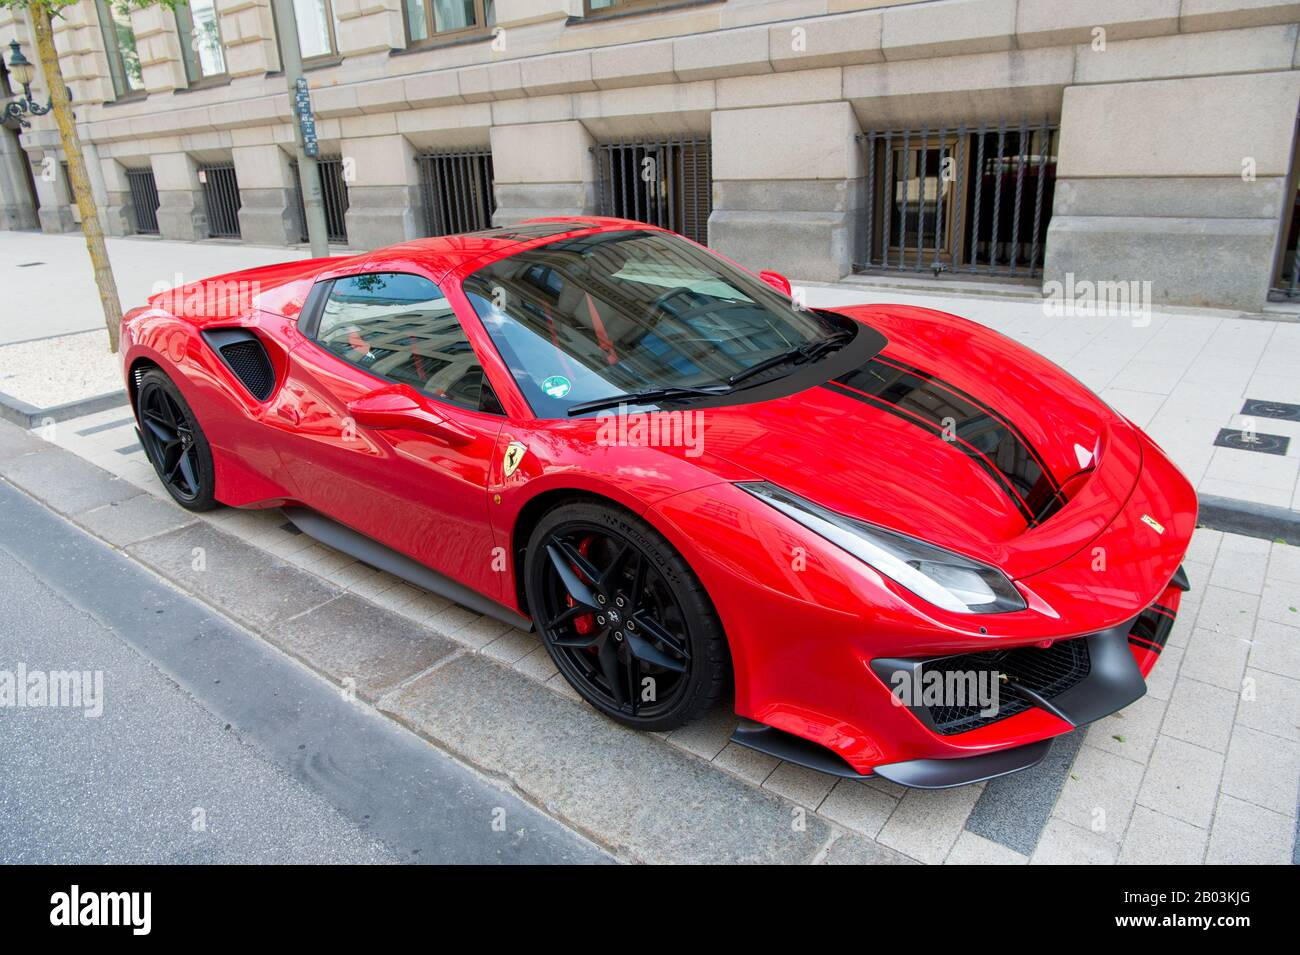 Hamburg Germany July 27 2019 Supercar Red Ferrari 488 Pista Parked At The Street In Hamburg Germany Lamborghini Is Famous Expensive Automobile Brand Car Stock Photo Alamy